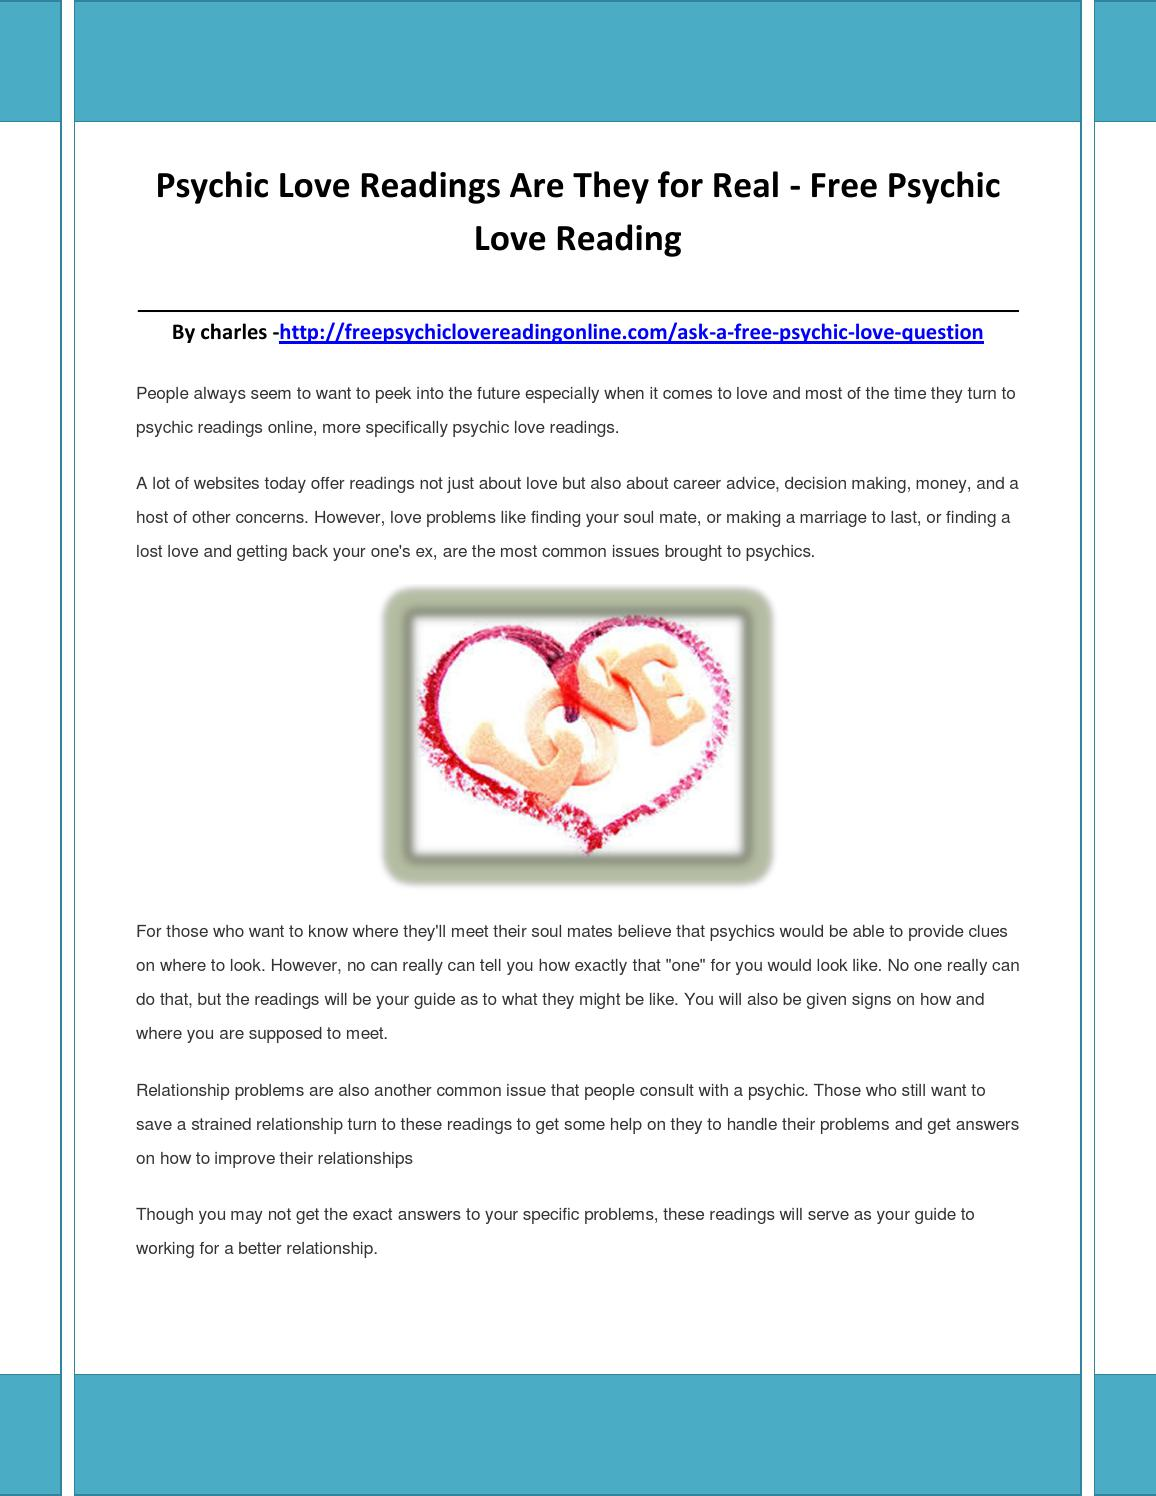 Psychic love readings are they for real by codliveroilpillf - issuu